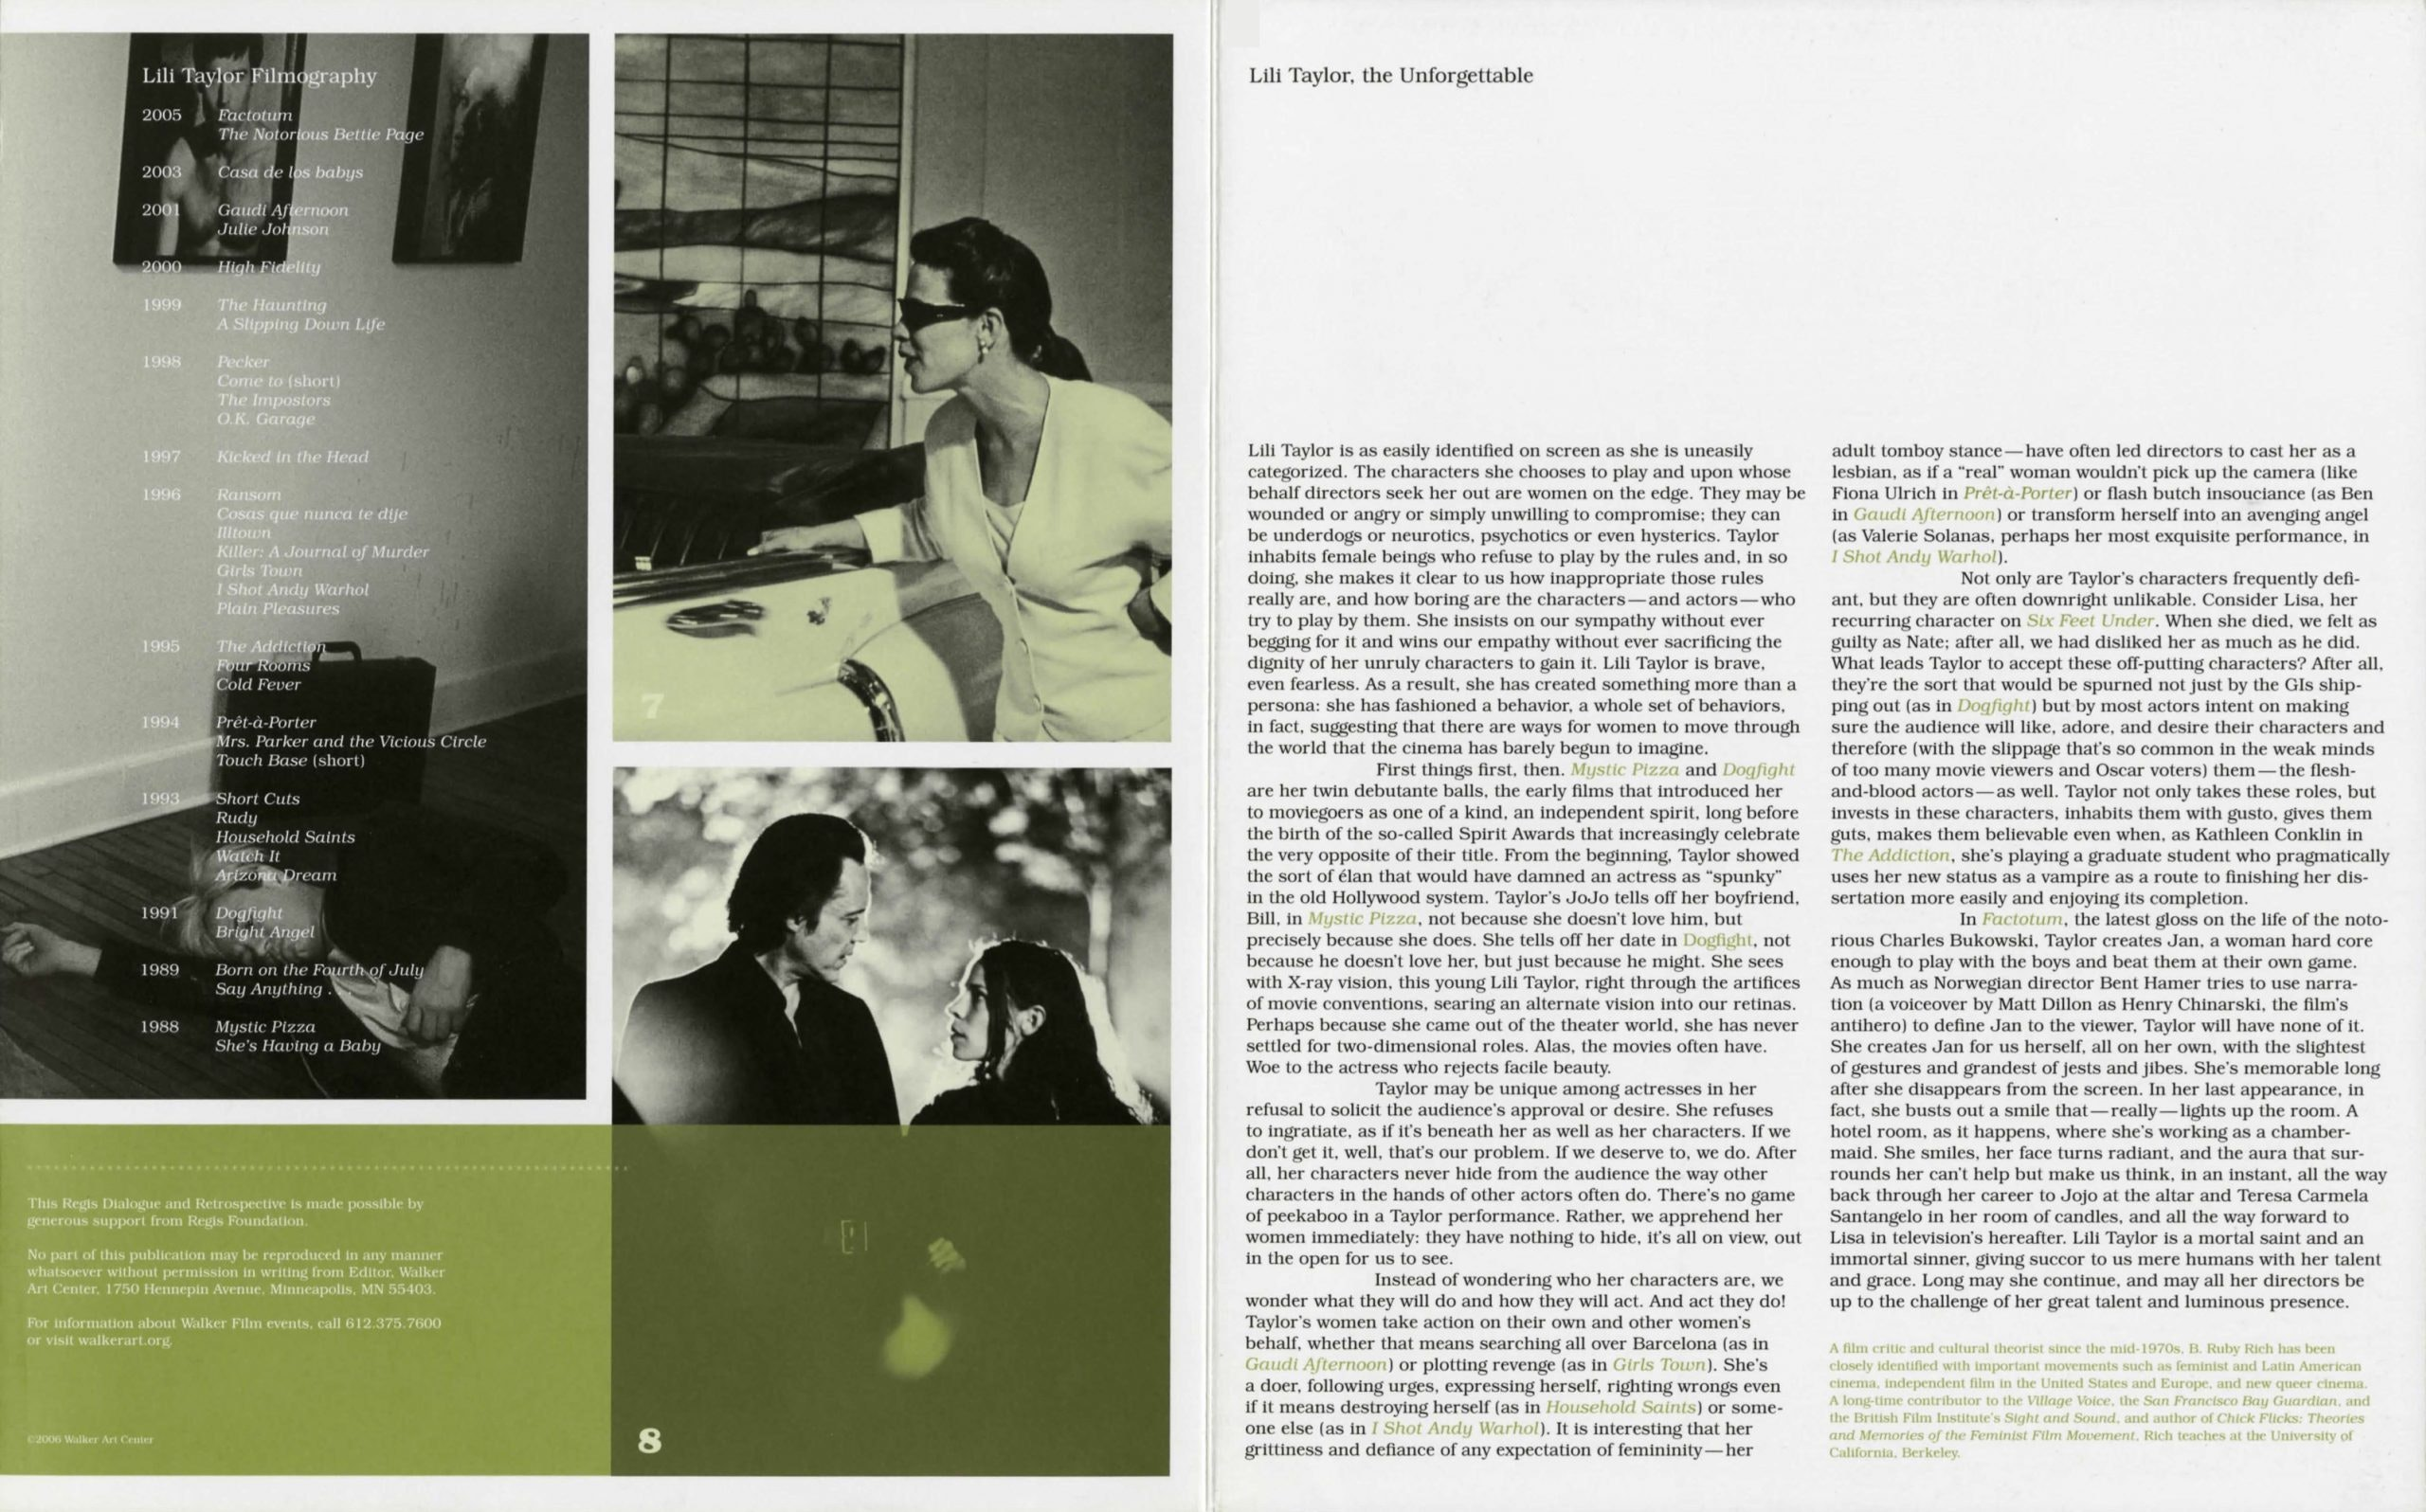 Lili Taylor Dialogue event brochure pg 4